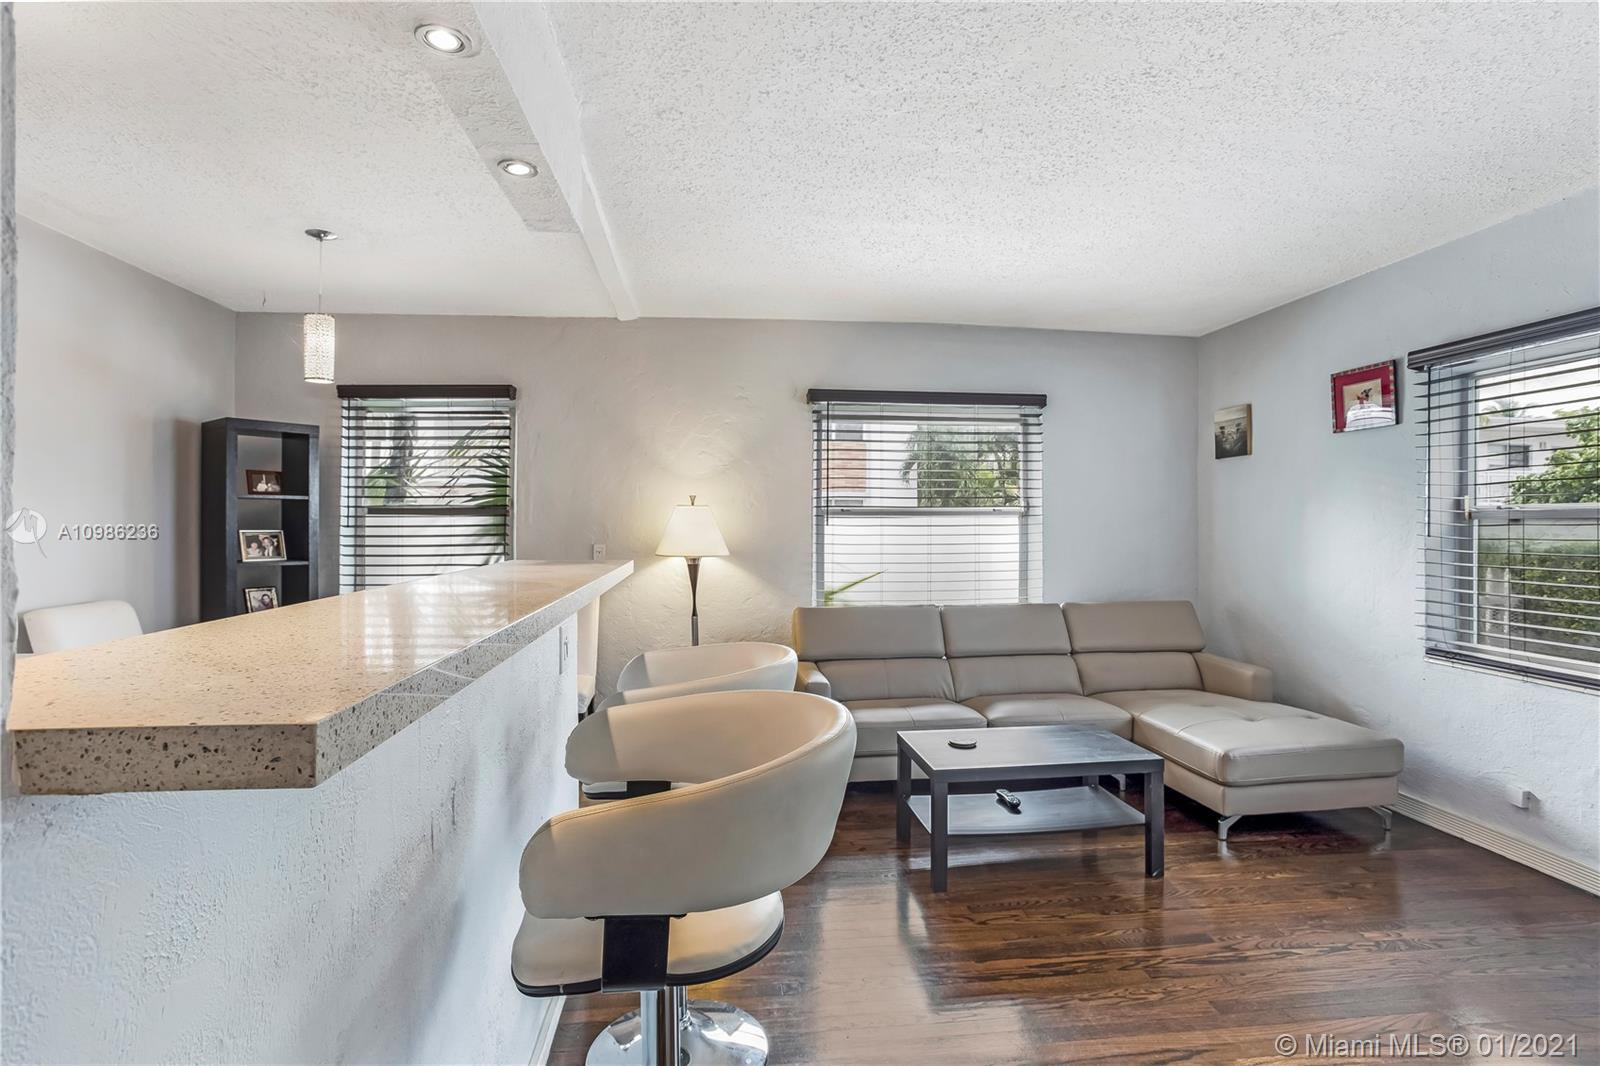 Great opportunity to own a unique Art Deco property in a boutique building. The apartment is one bed